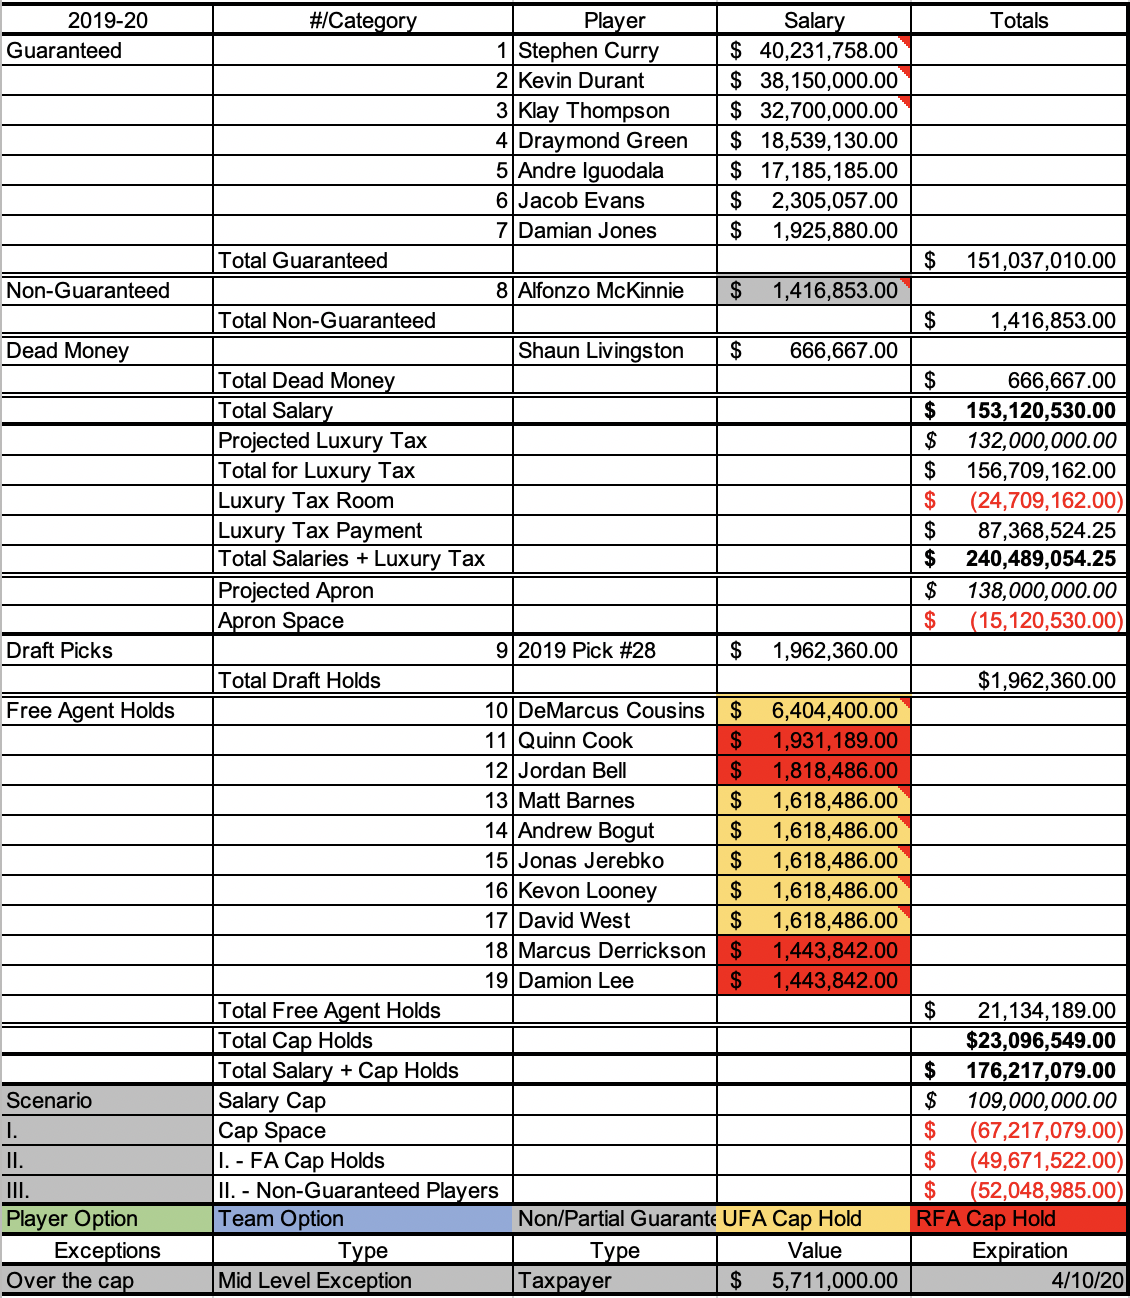 Warriors 2019-20 payroll if the re-sign both Kevin Durant and Klay Thompson to their respective maximum starting salaries. This also assumes Shaun Livingston retires and his $2 million guarantee is stretched.